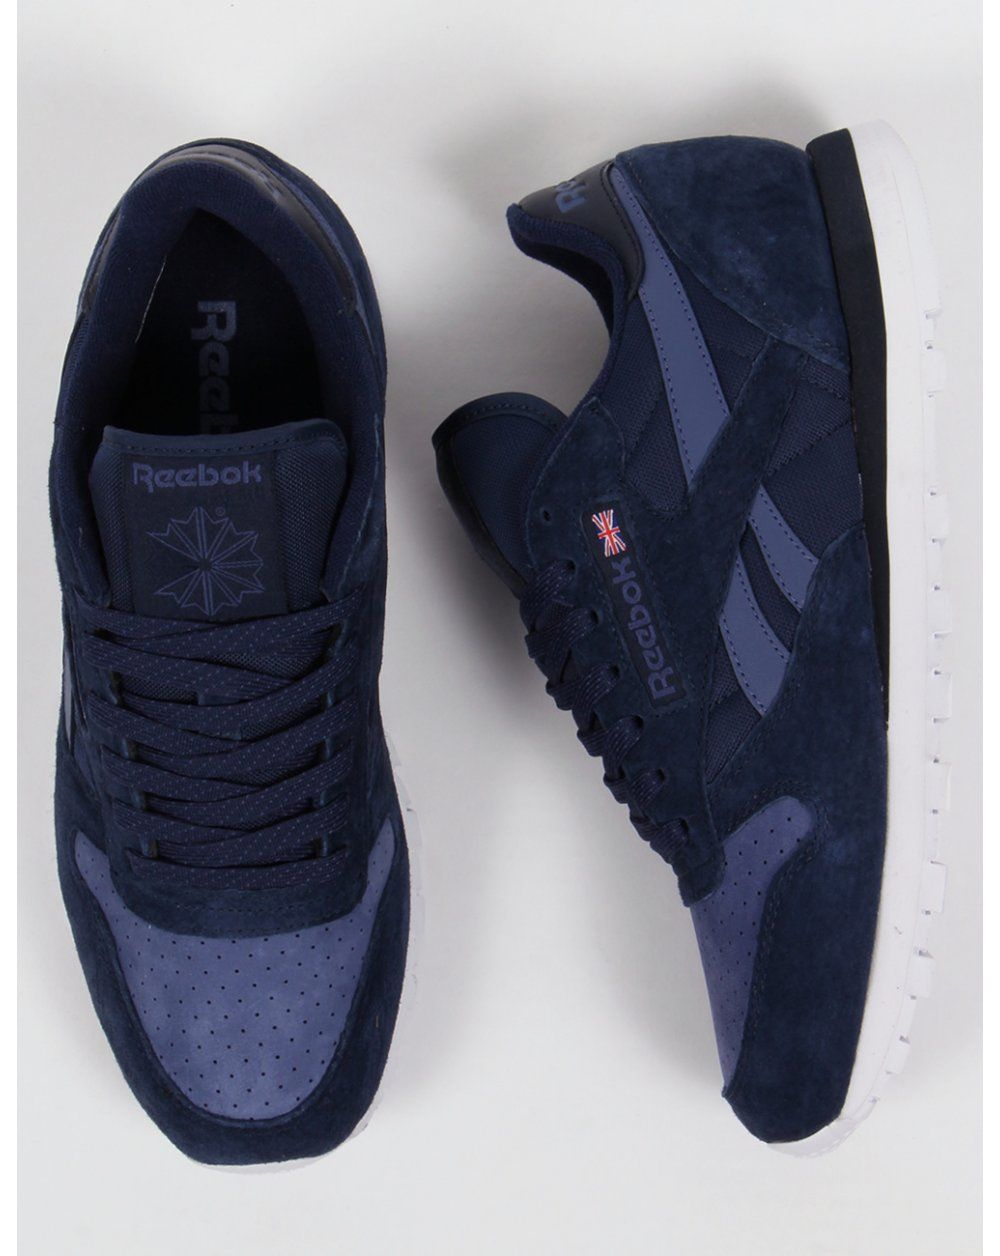 be206a59091de Reebok Classic Leather NP Trainers Navy Midnight Blue